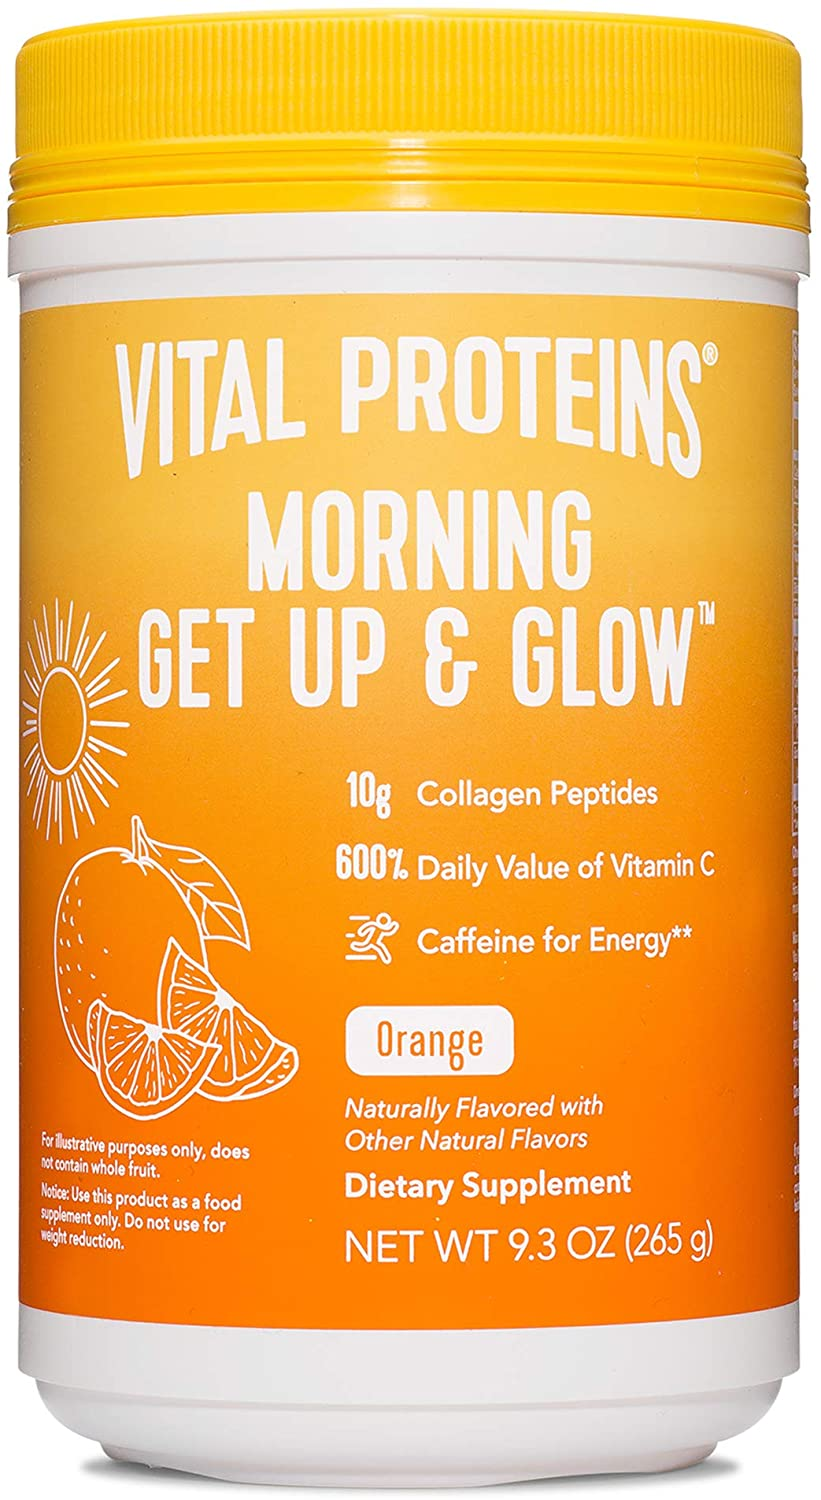 Vital Proteins Morning Get Up and Glow Collagen Powder - 9.3 oz